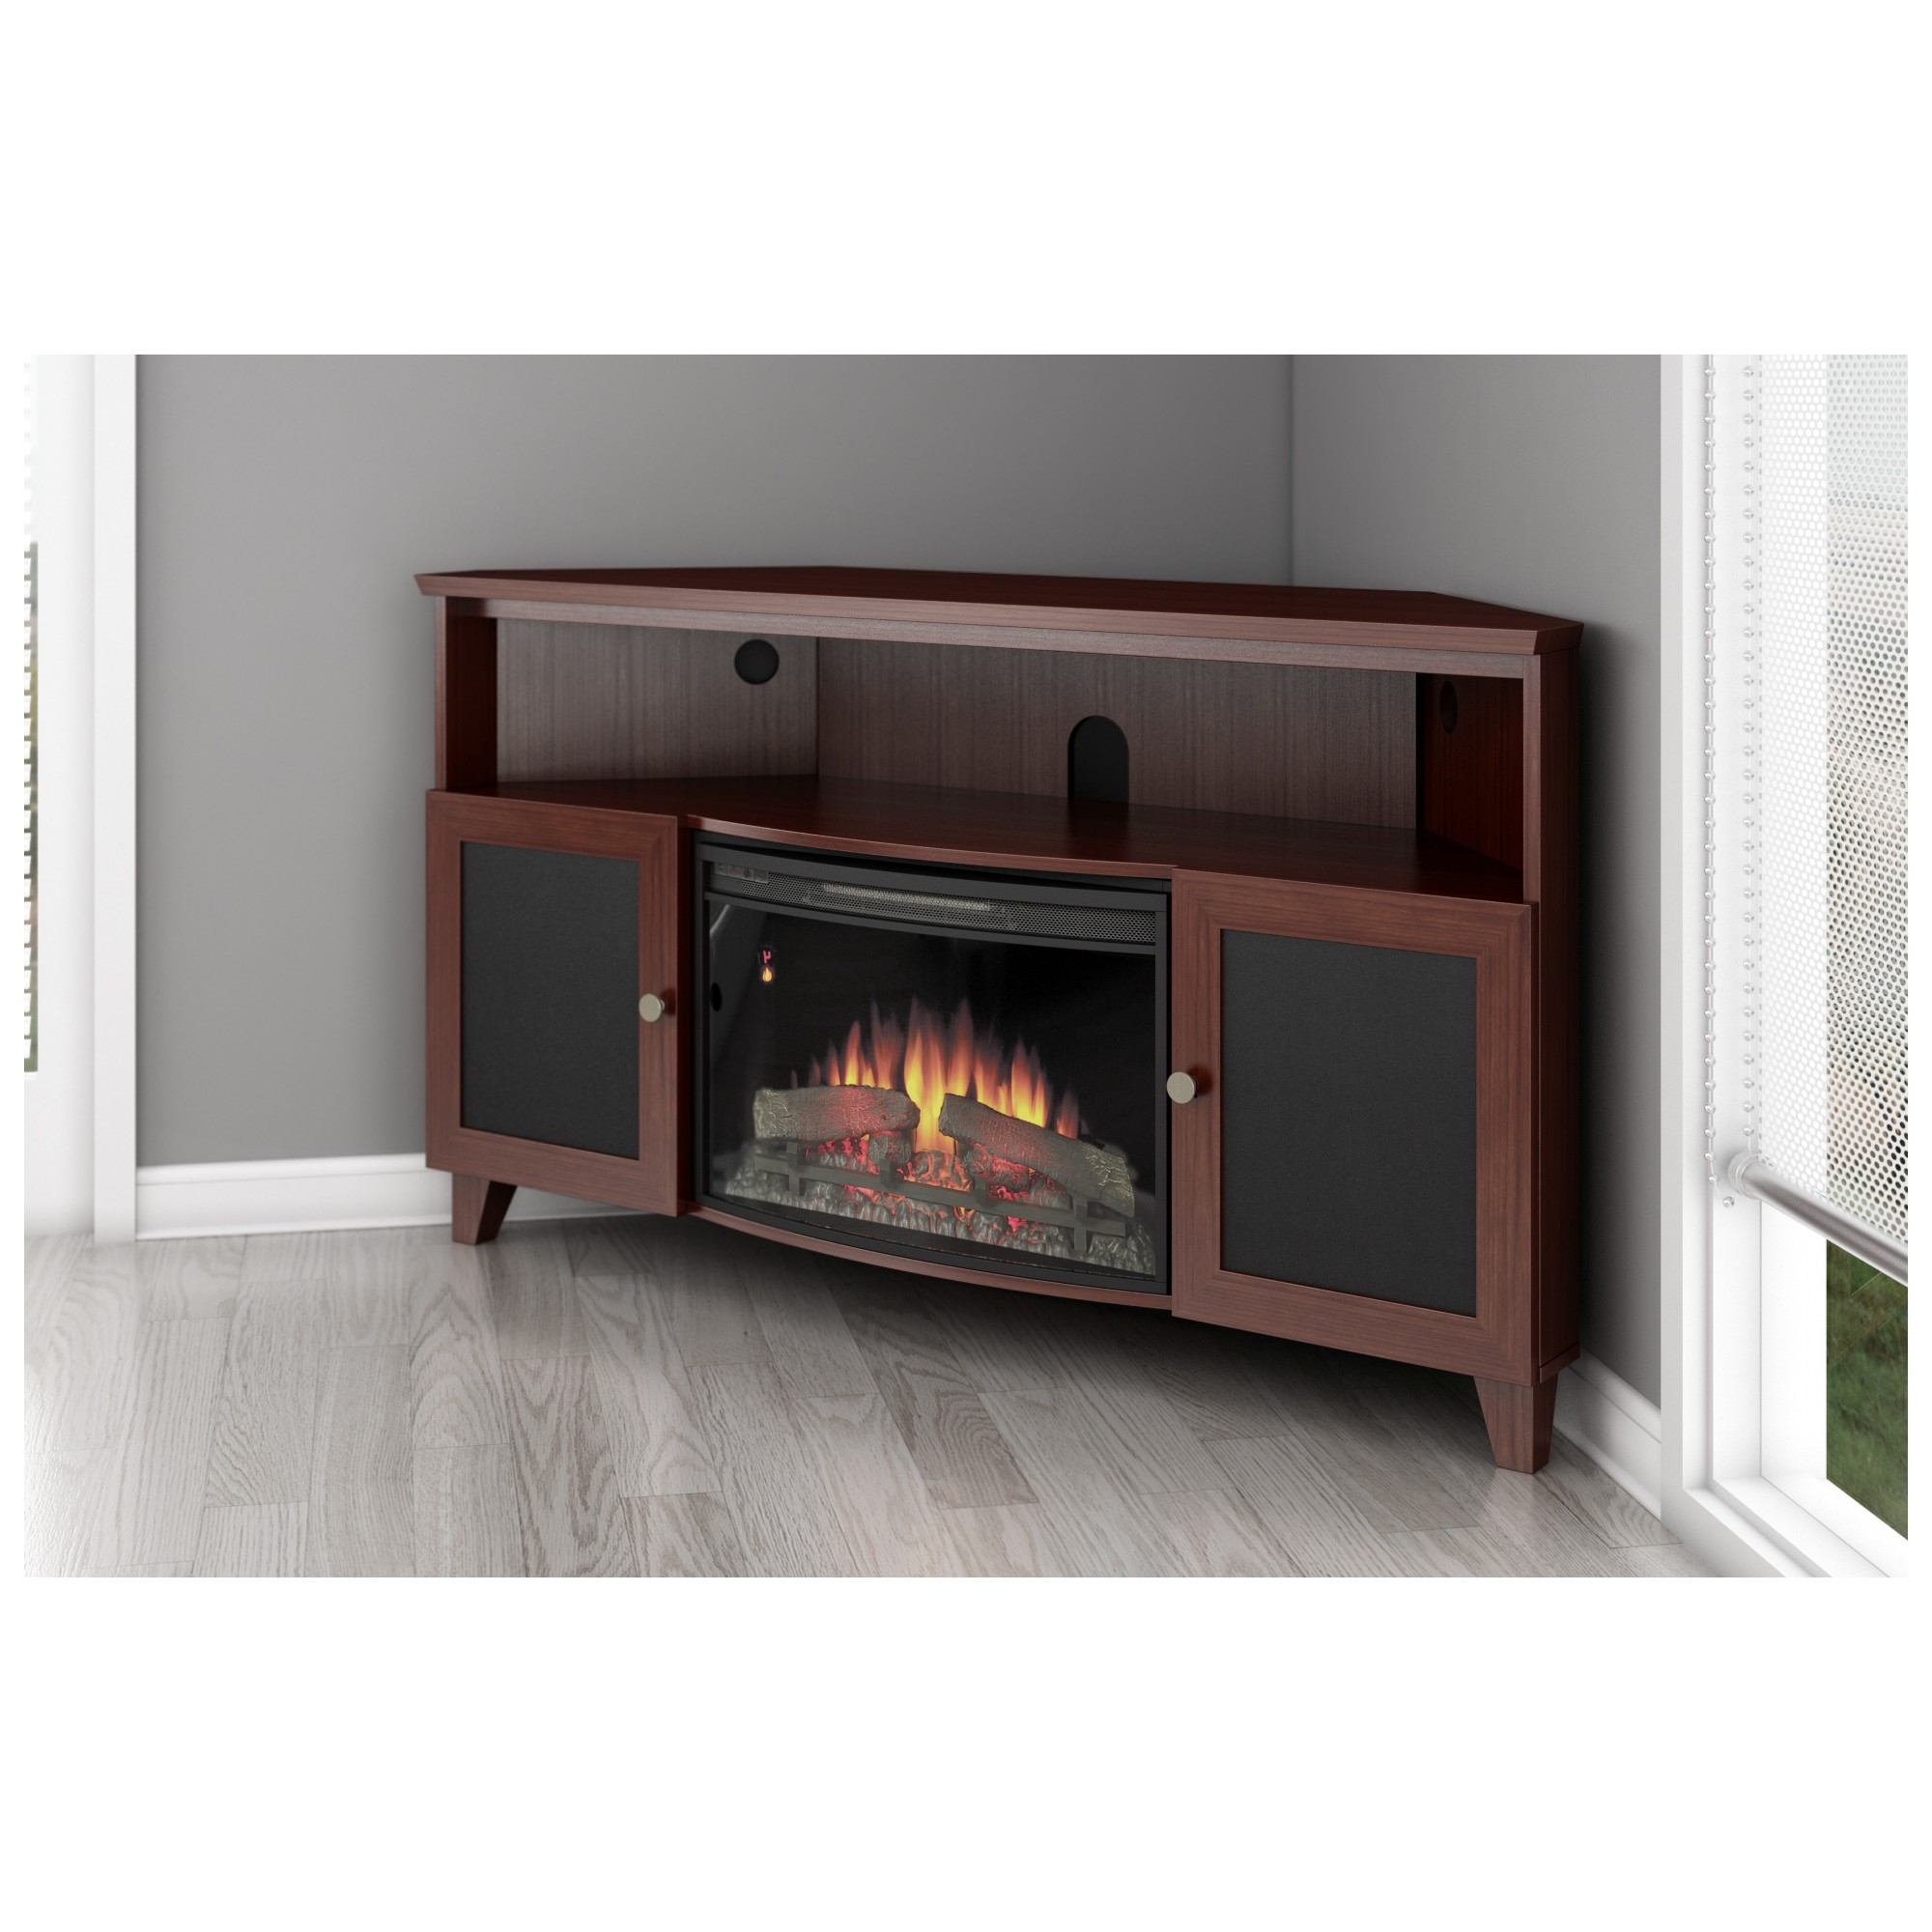 Furniture: Captivating Tv Stand With Fireplace For Living Room In Trendy Corner Tv Stands For 60 Inch Tv (View 13 of 20)